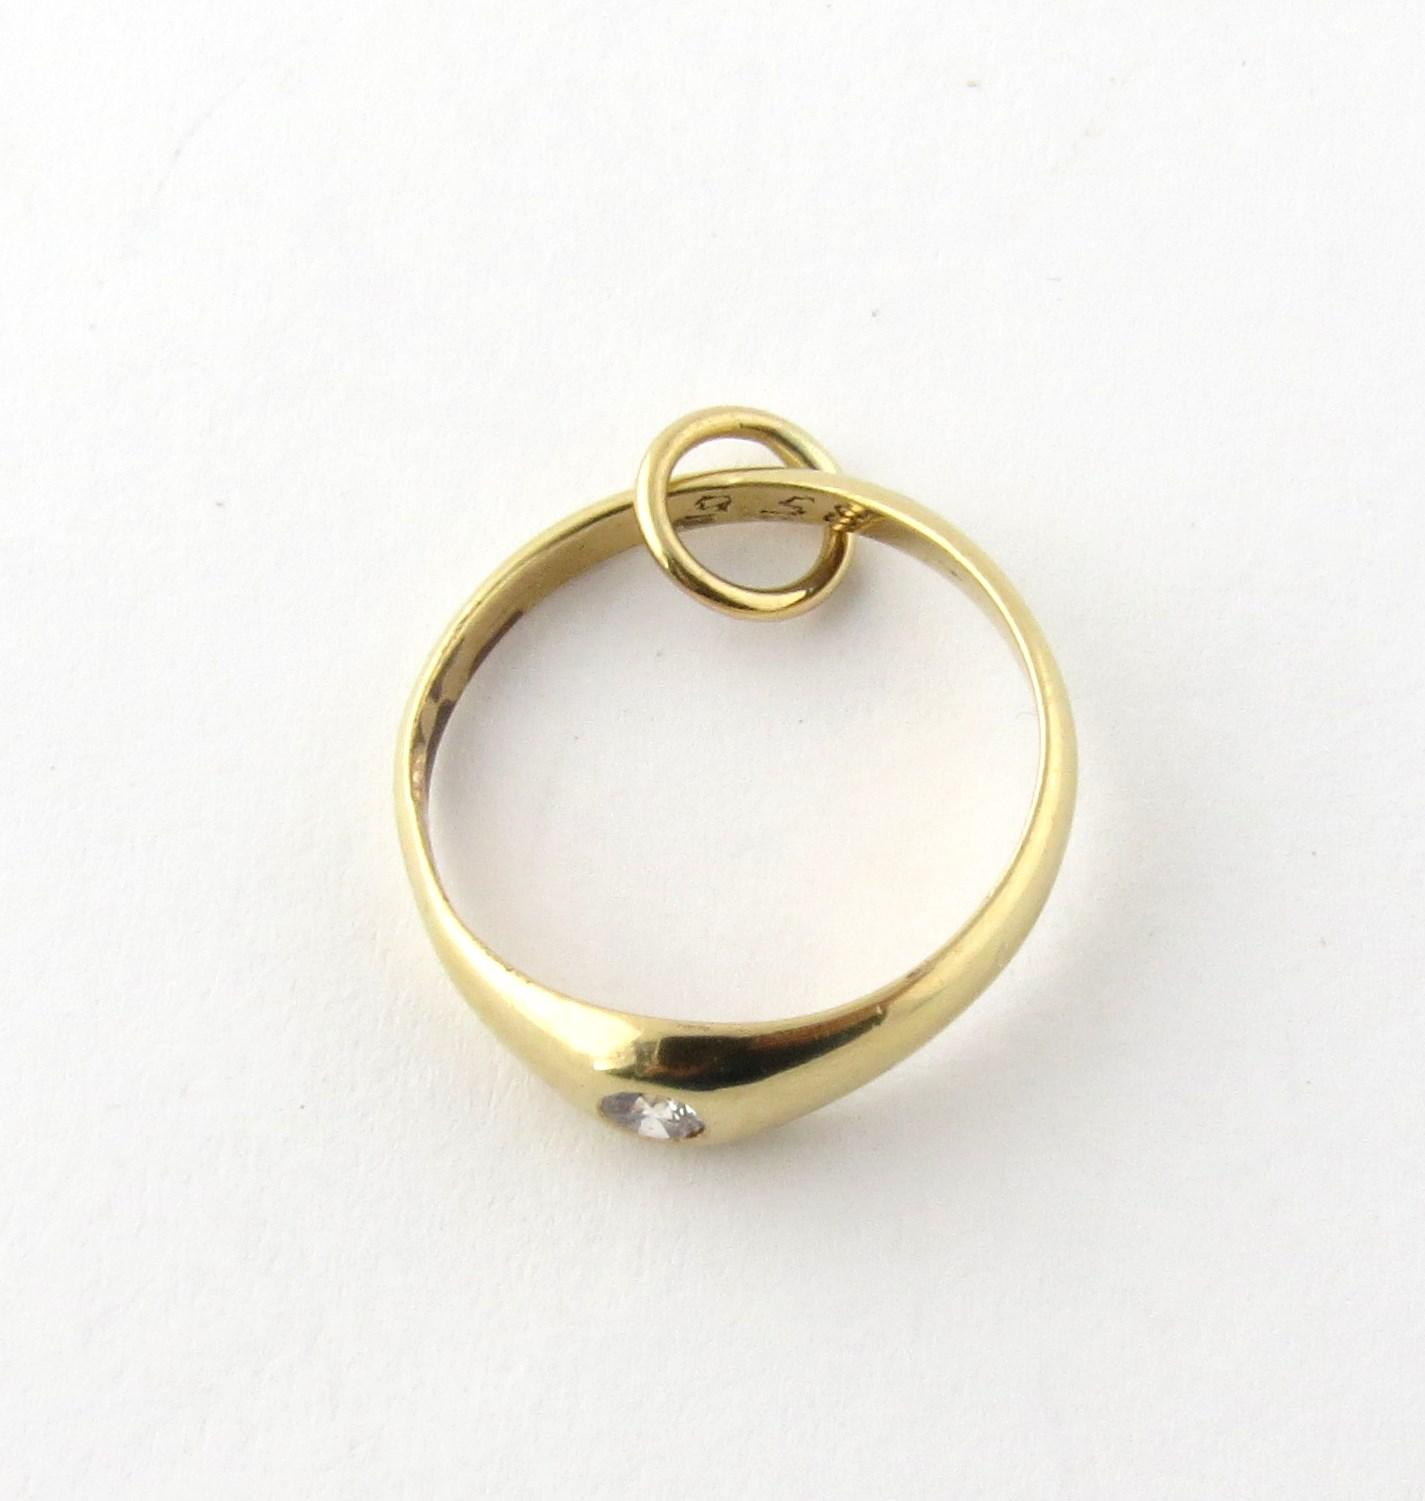 Tiffany & Co 14K Yellow Gold and Diamond Engagement Ring Charm